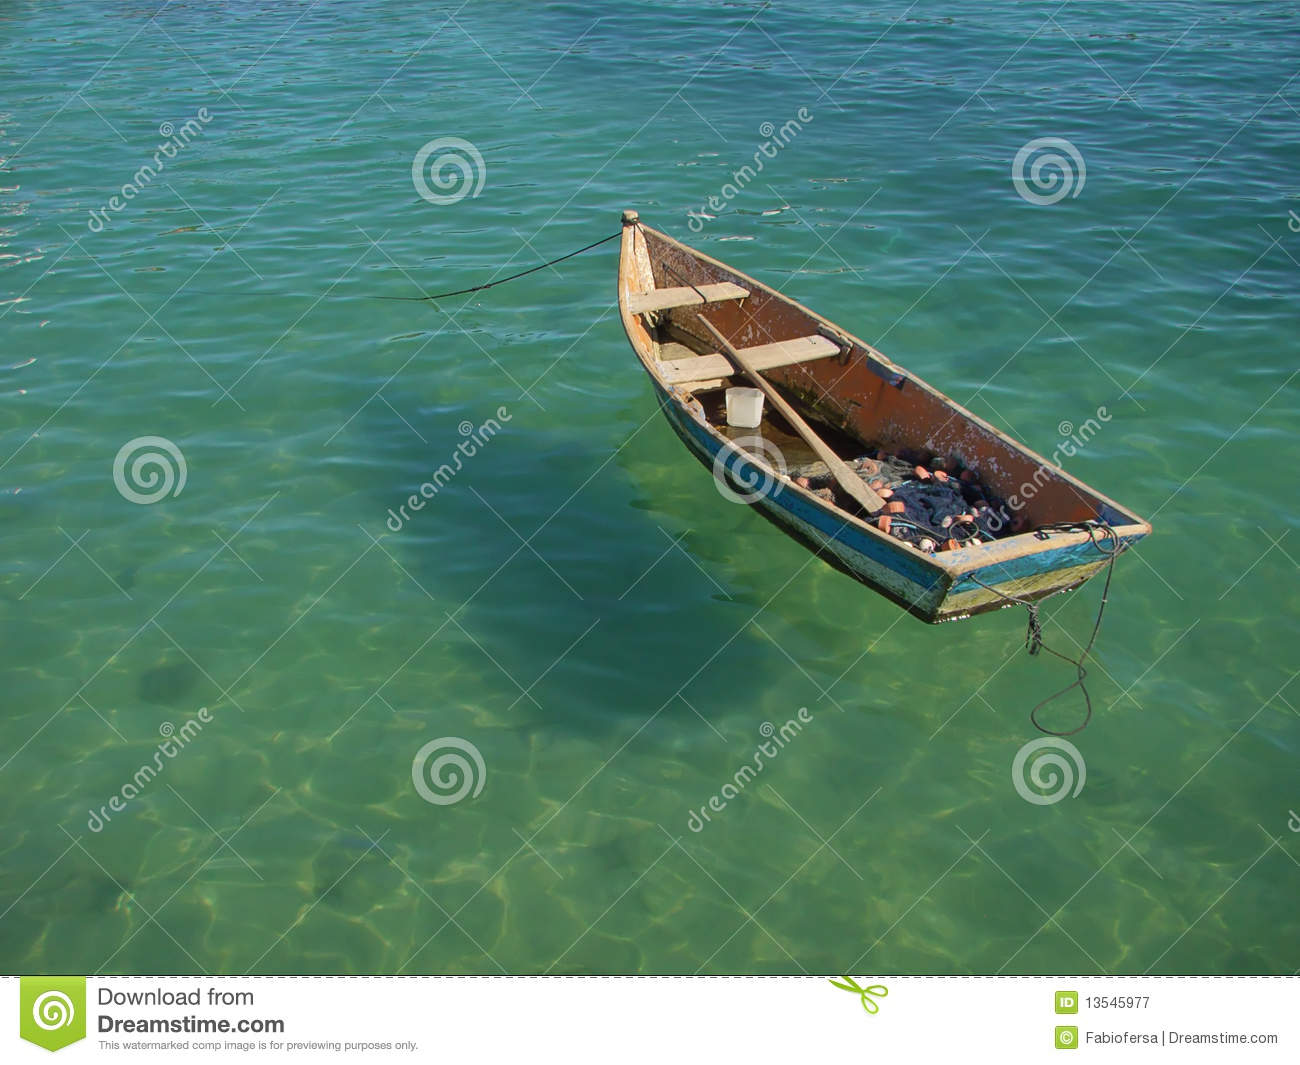 Row Boat Floating On The Water Royalty Free Stock Photography - Image: 13545977